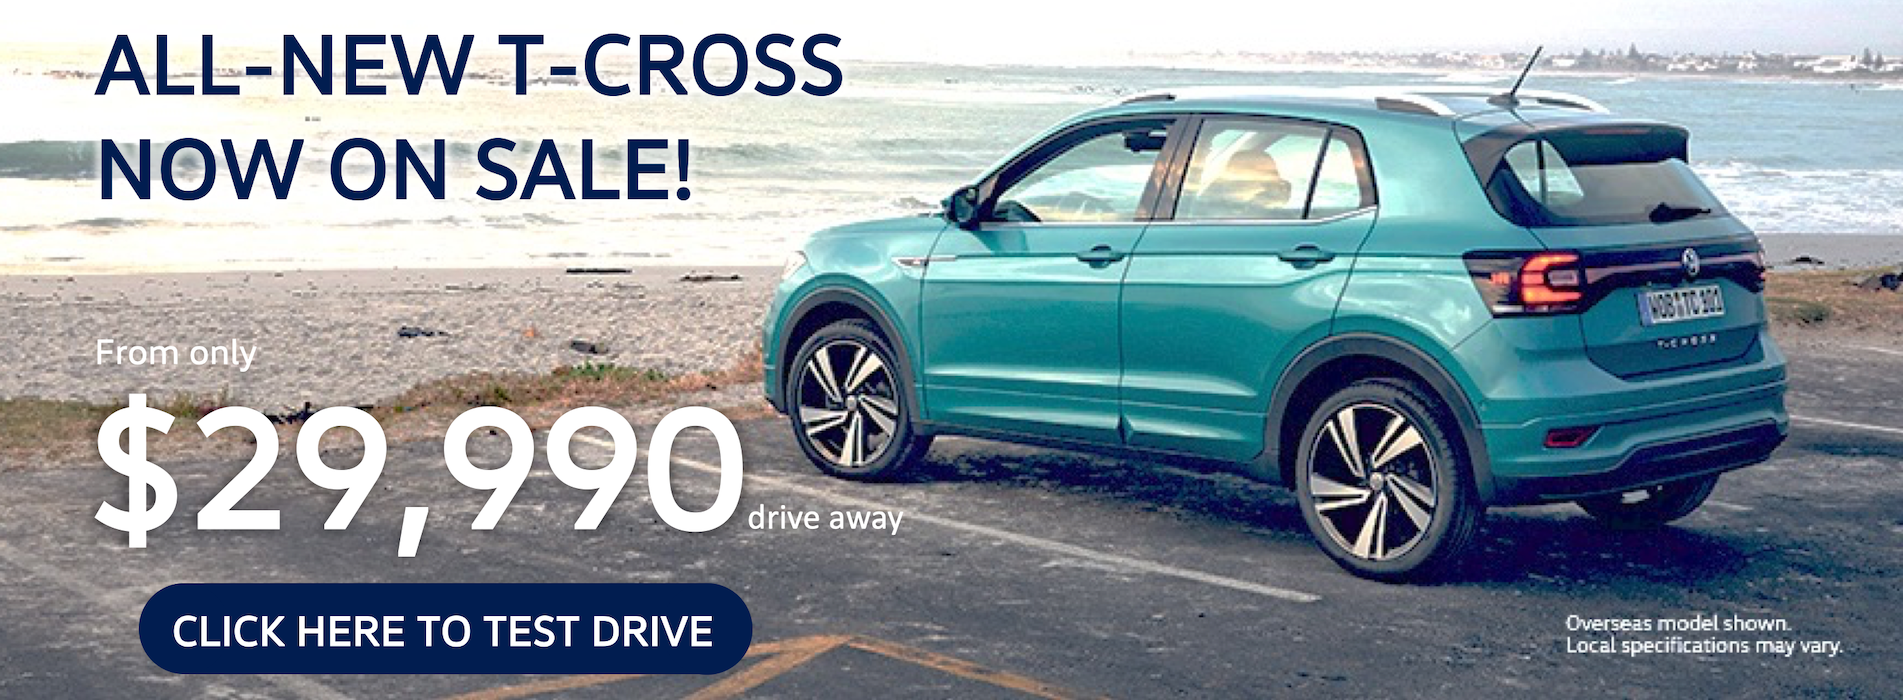 T-Cross Now On Sale